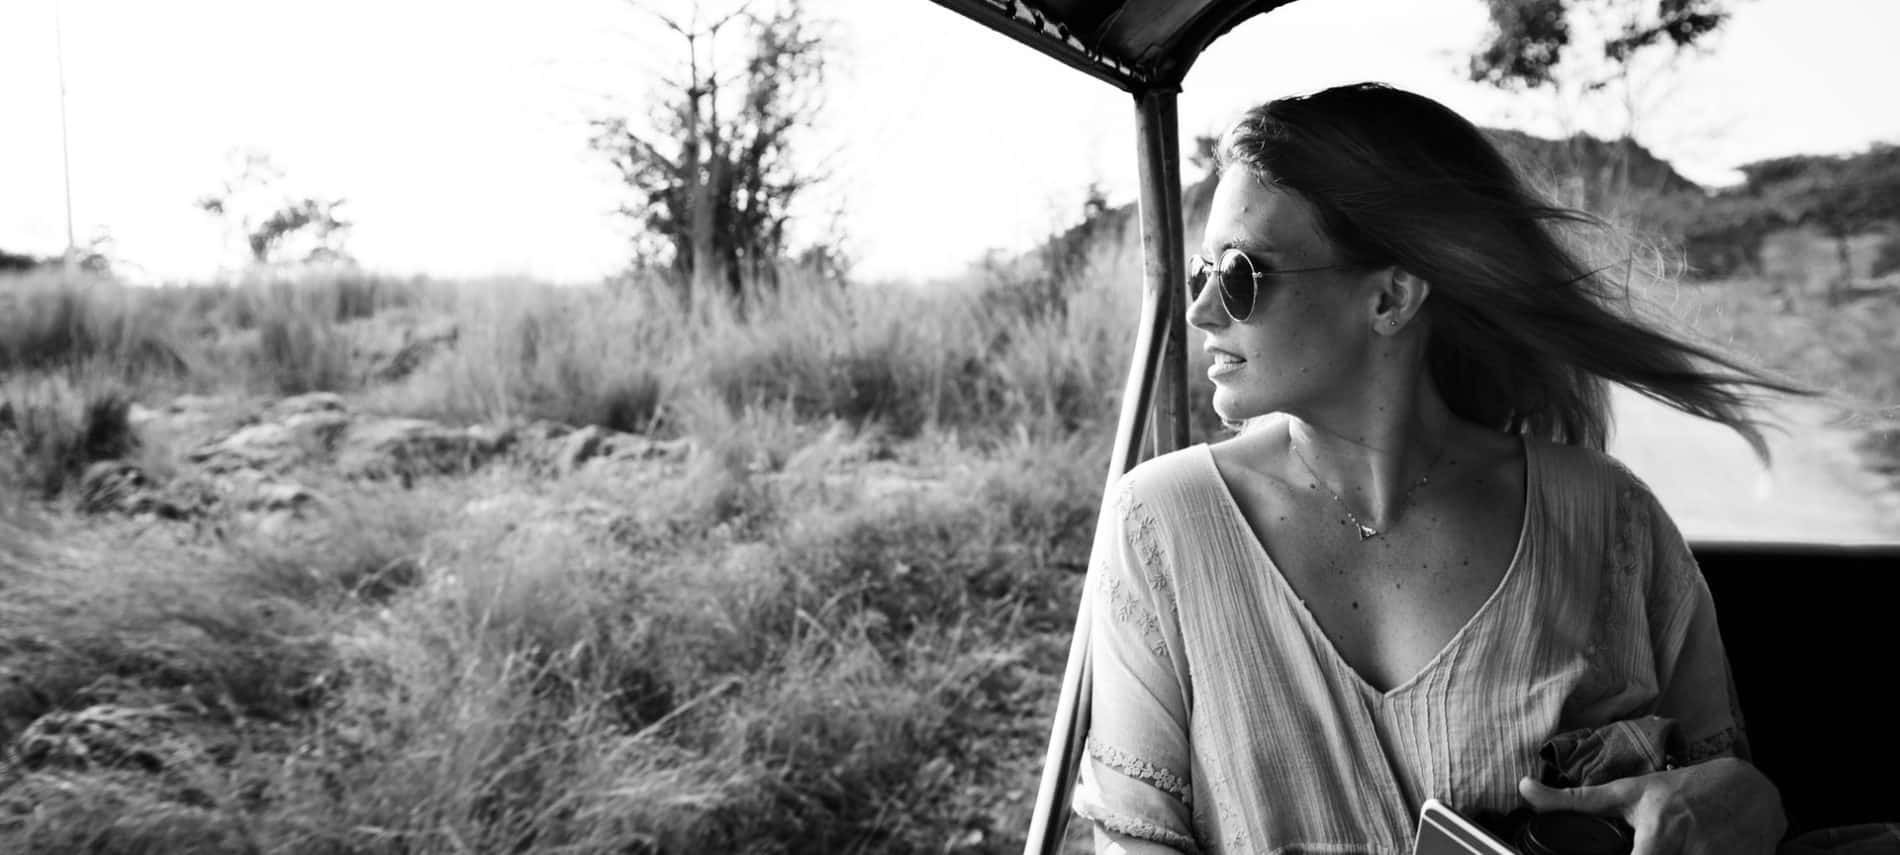 woman in a jeep touring nature